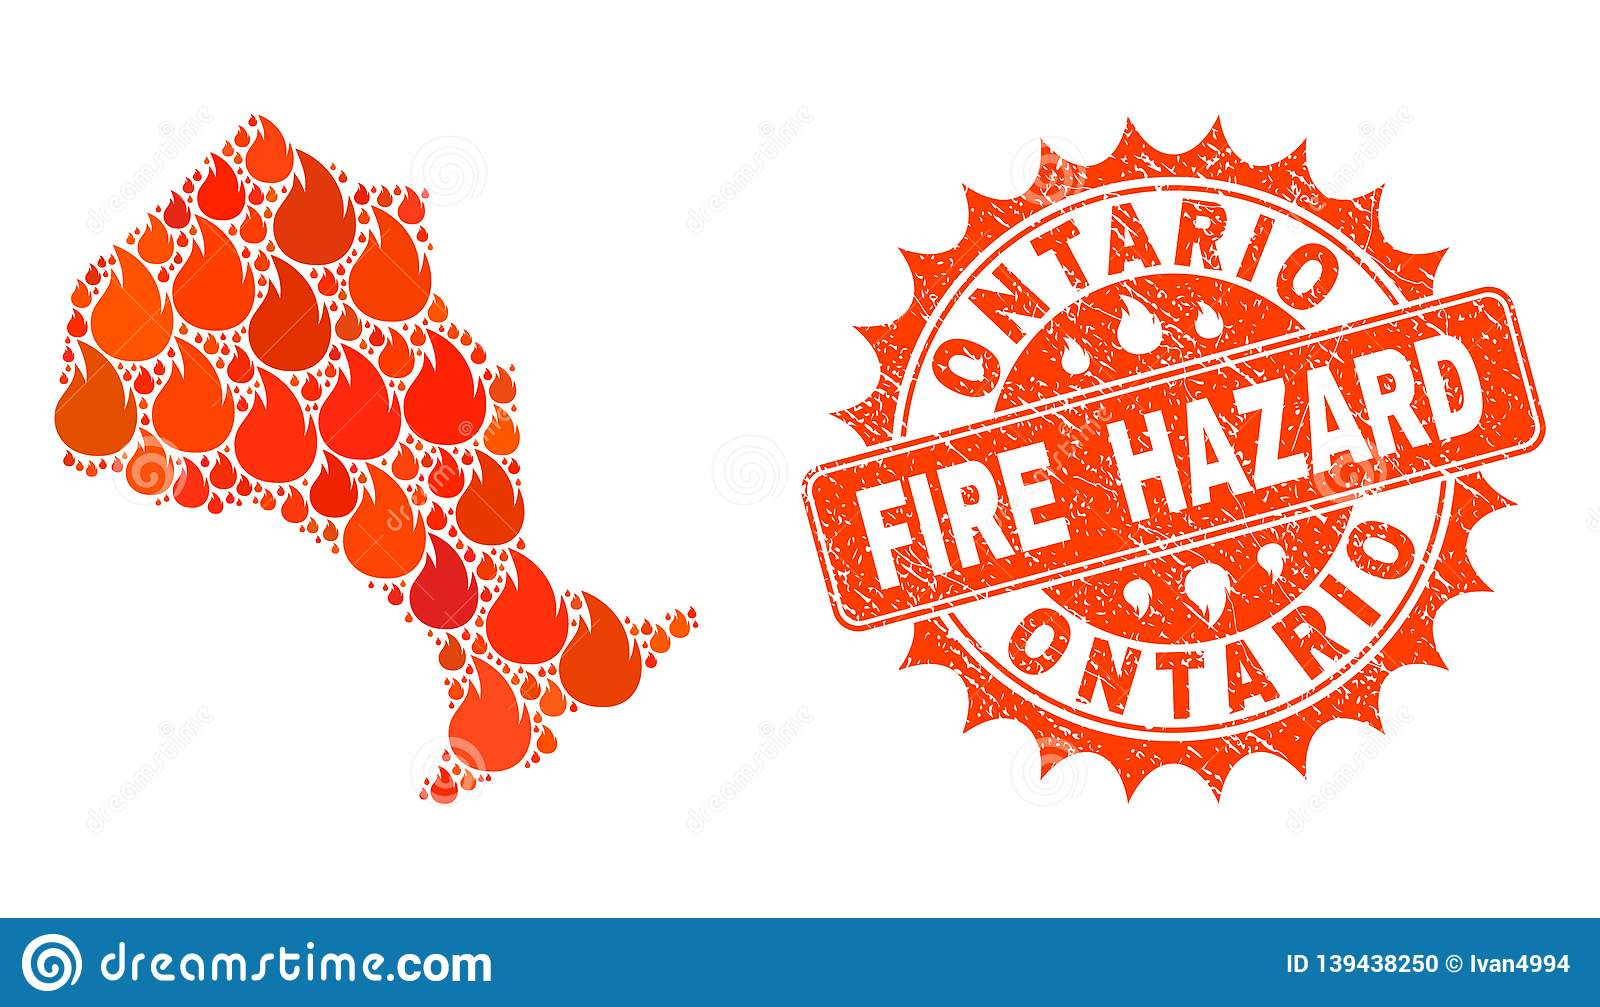 Collage Of Map Of Ontario Province Burning And Fire Hazard Grunge